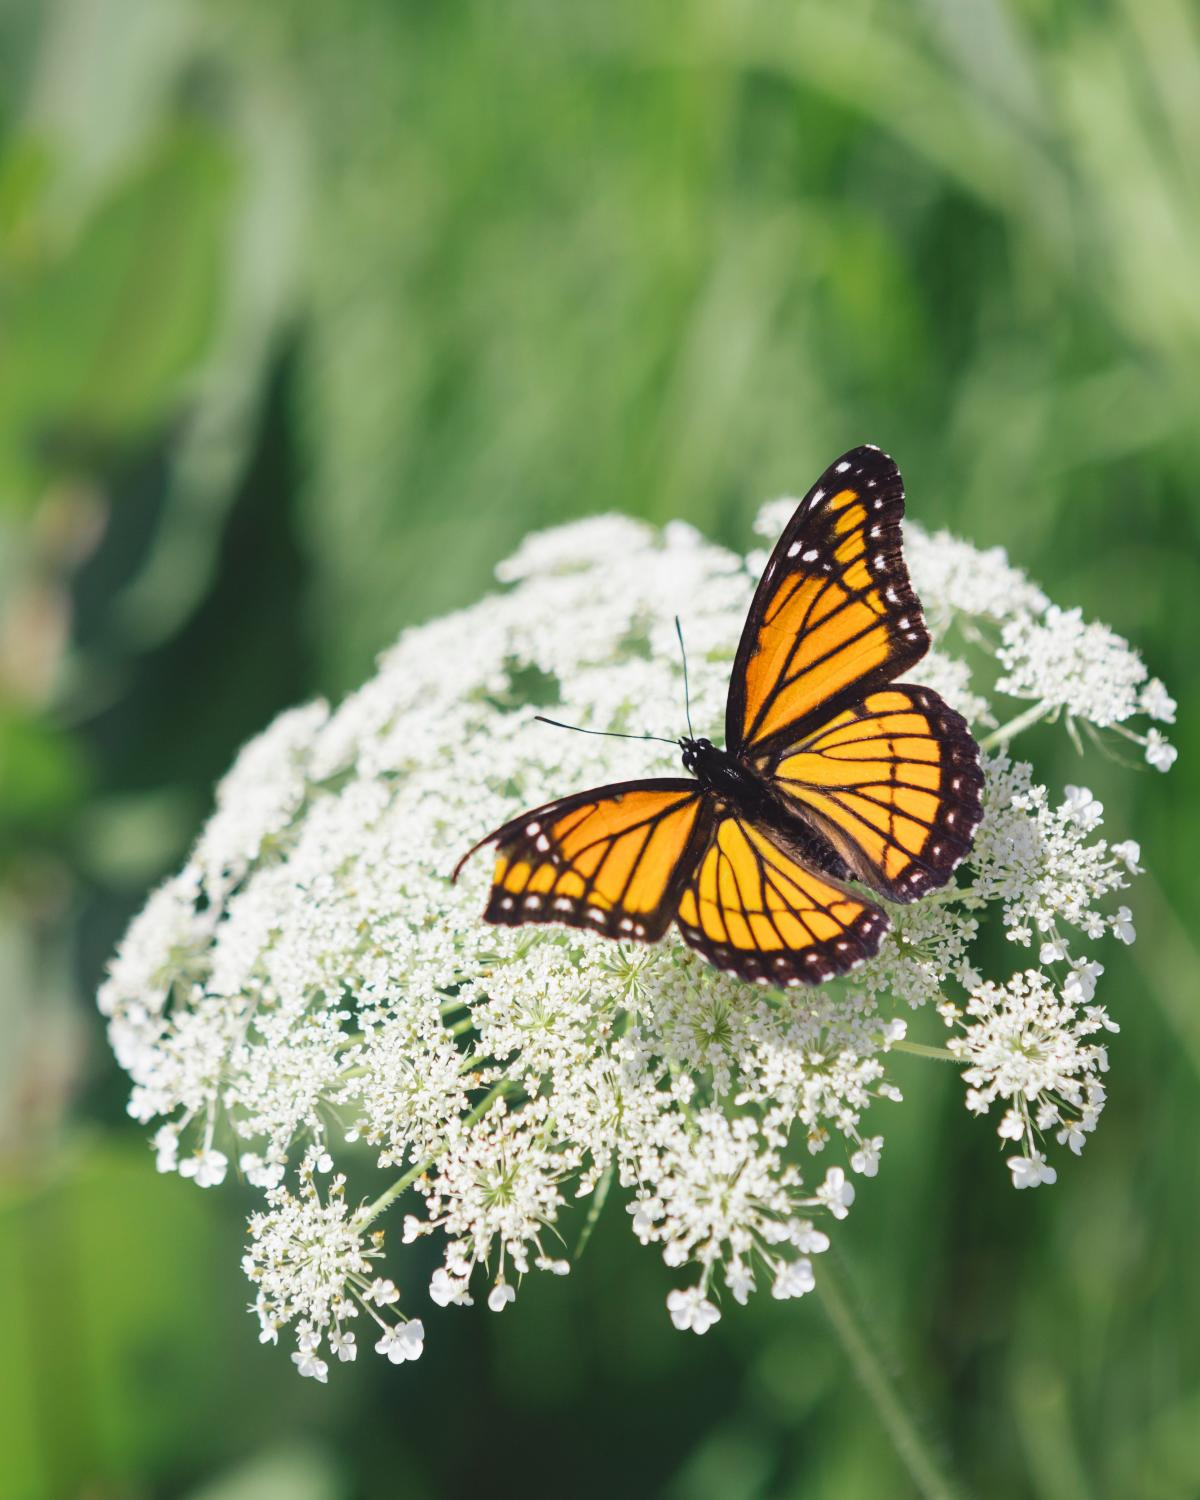 photo of a butterfly sitting on white lacy flowers